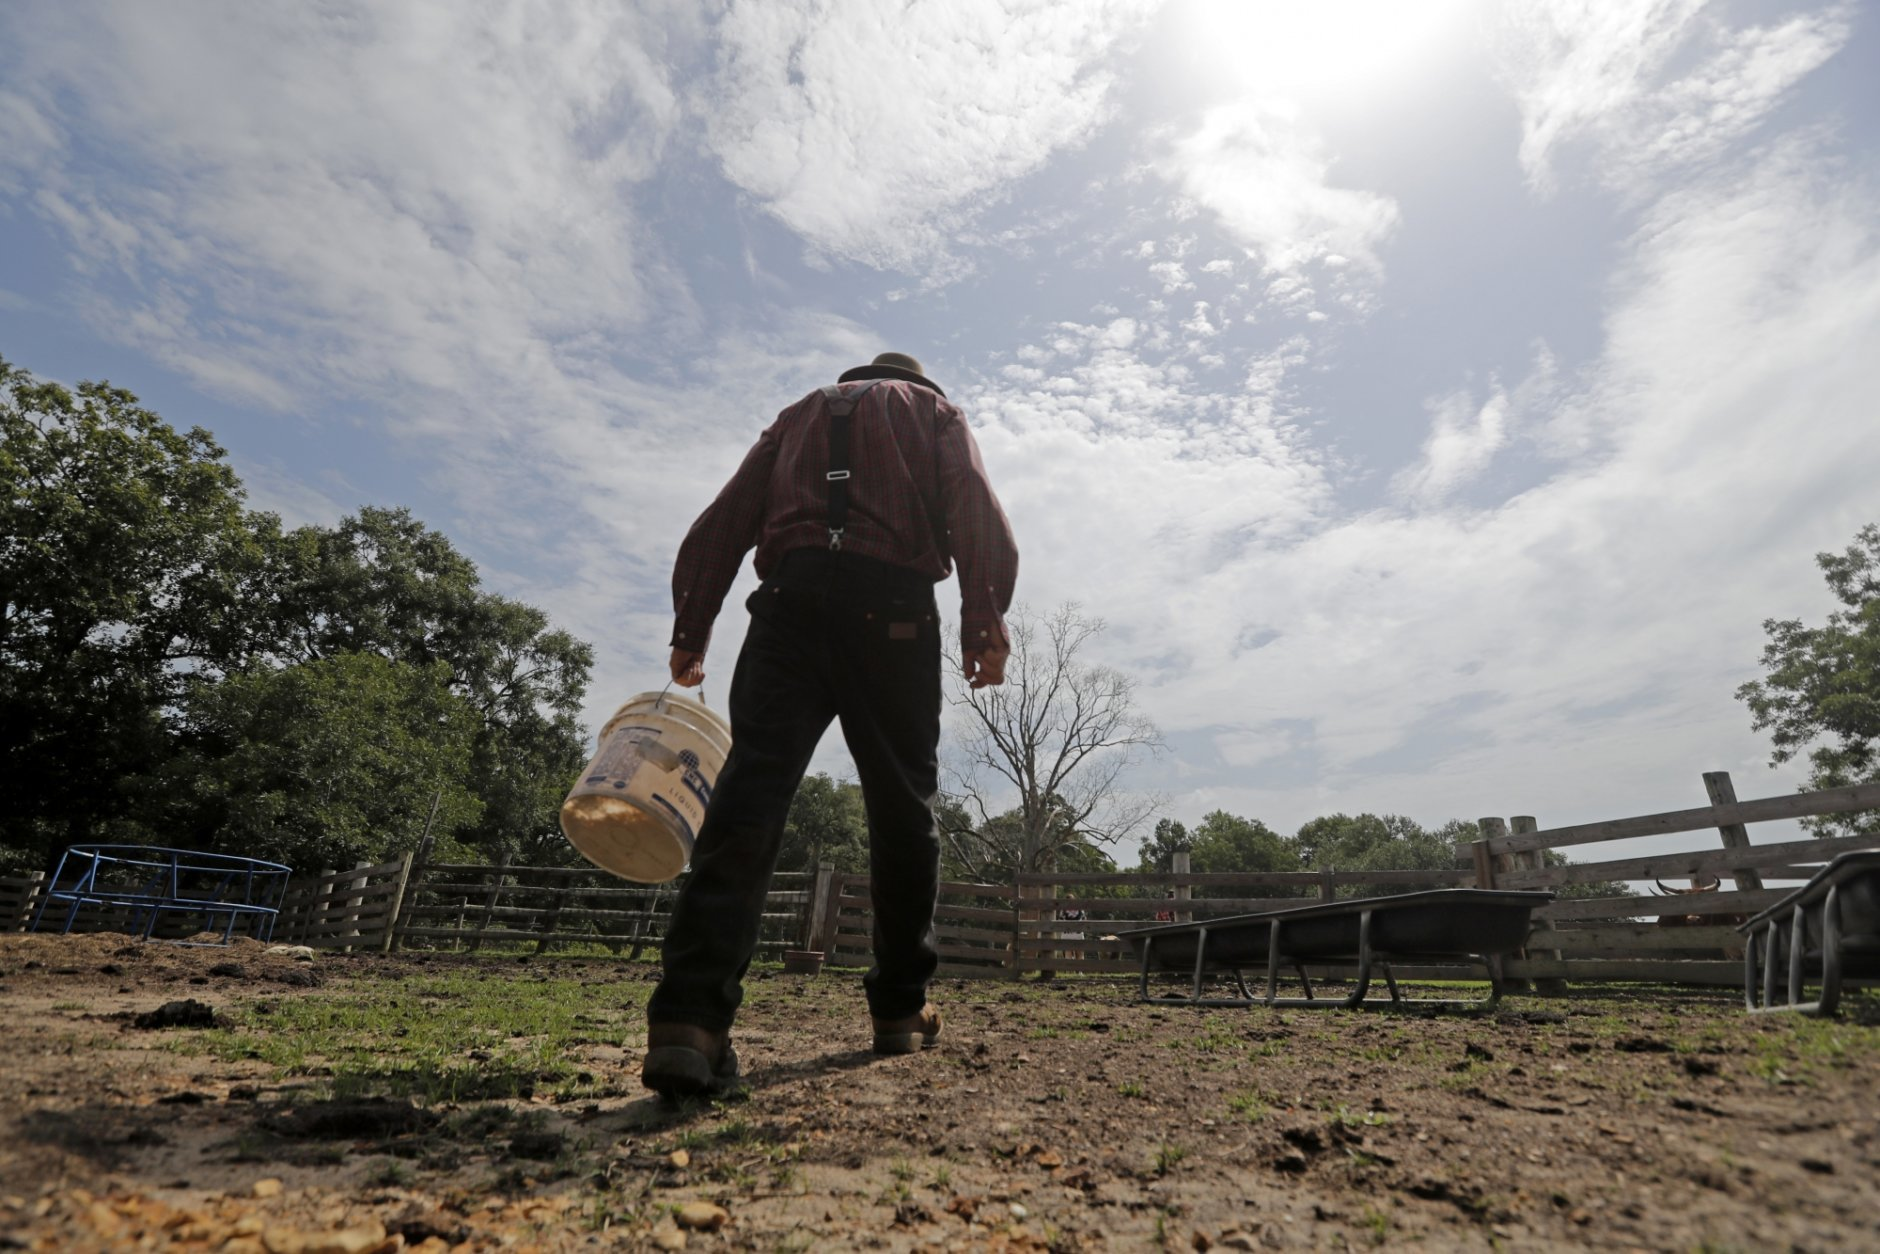 In this July 17, 2018, photo, Bill Frank Brown walks to feed his horses on his farm in Poplarville, Miss. The farm had been in Brown's family since 1881 and the livestock there, even longer. Brown had three stallions back then, including DeSoto. He called them pine tacky horses. The Texas A&M veterinary school tested samples of the stallions' DNA, and they matched those of Rickman's Choctaws. (AP Photo/Gerald Herbert)